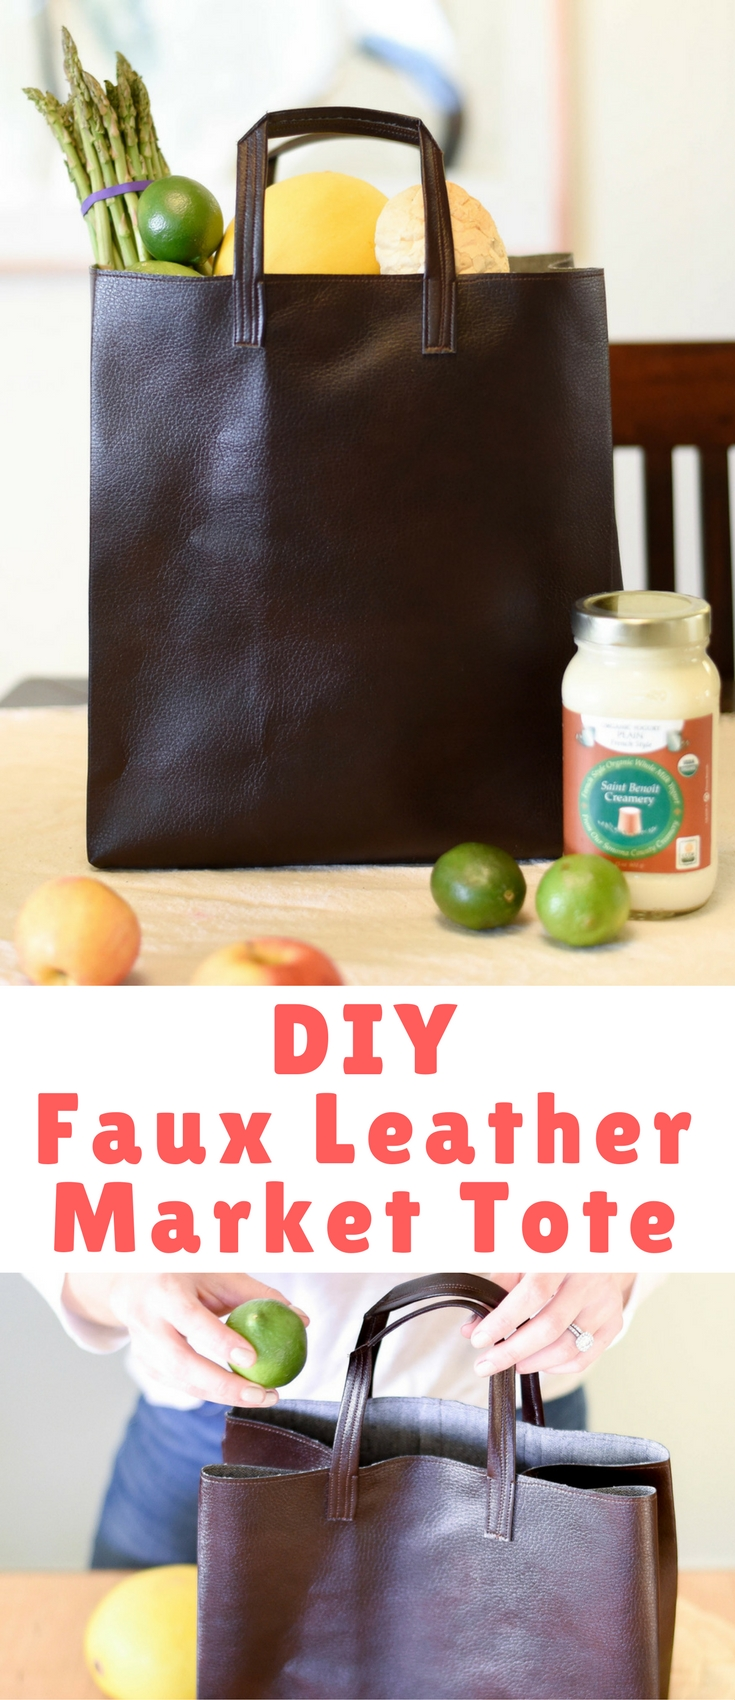 It folds up like a paper bag, and looks like a paper bag, only it's made of faux leather.